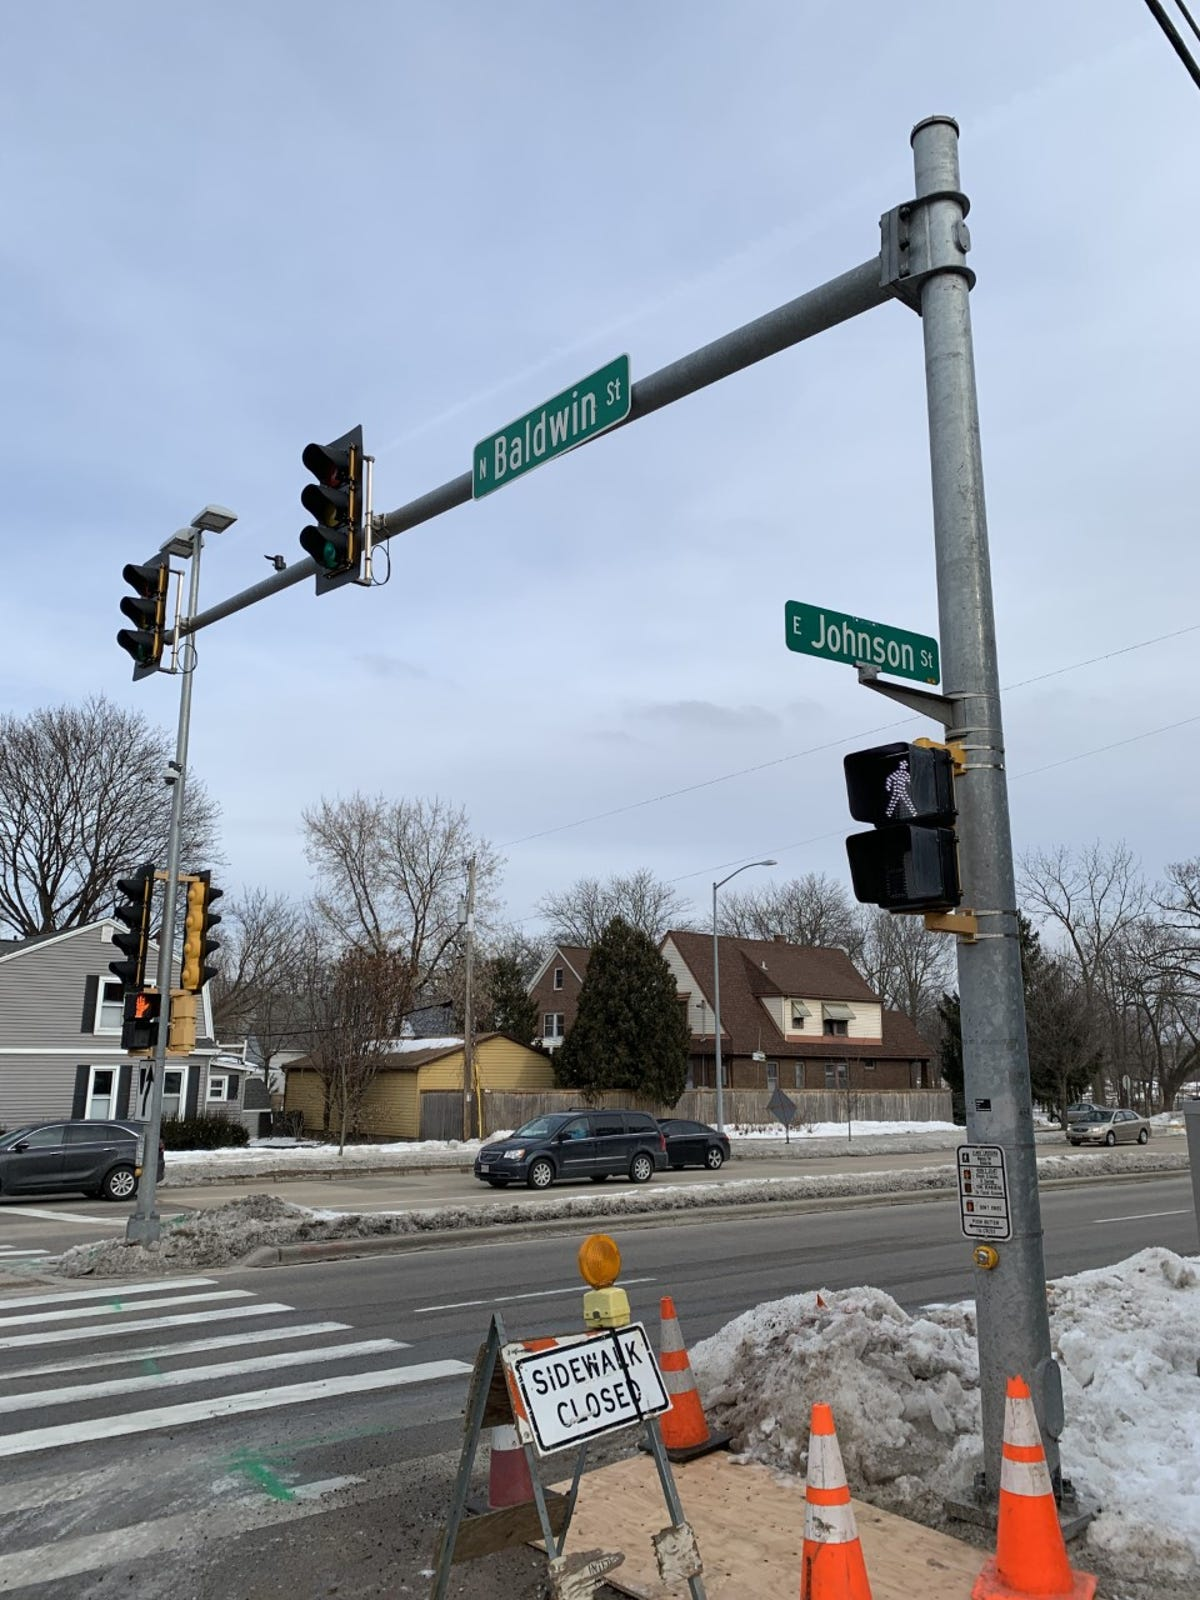 There's a corner in Madison where Baldwin and Johnson meet